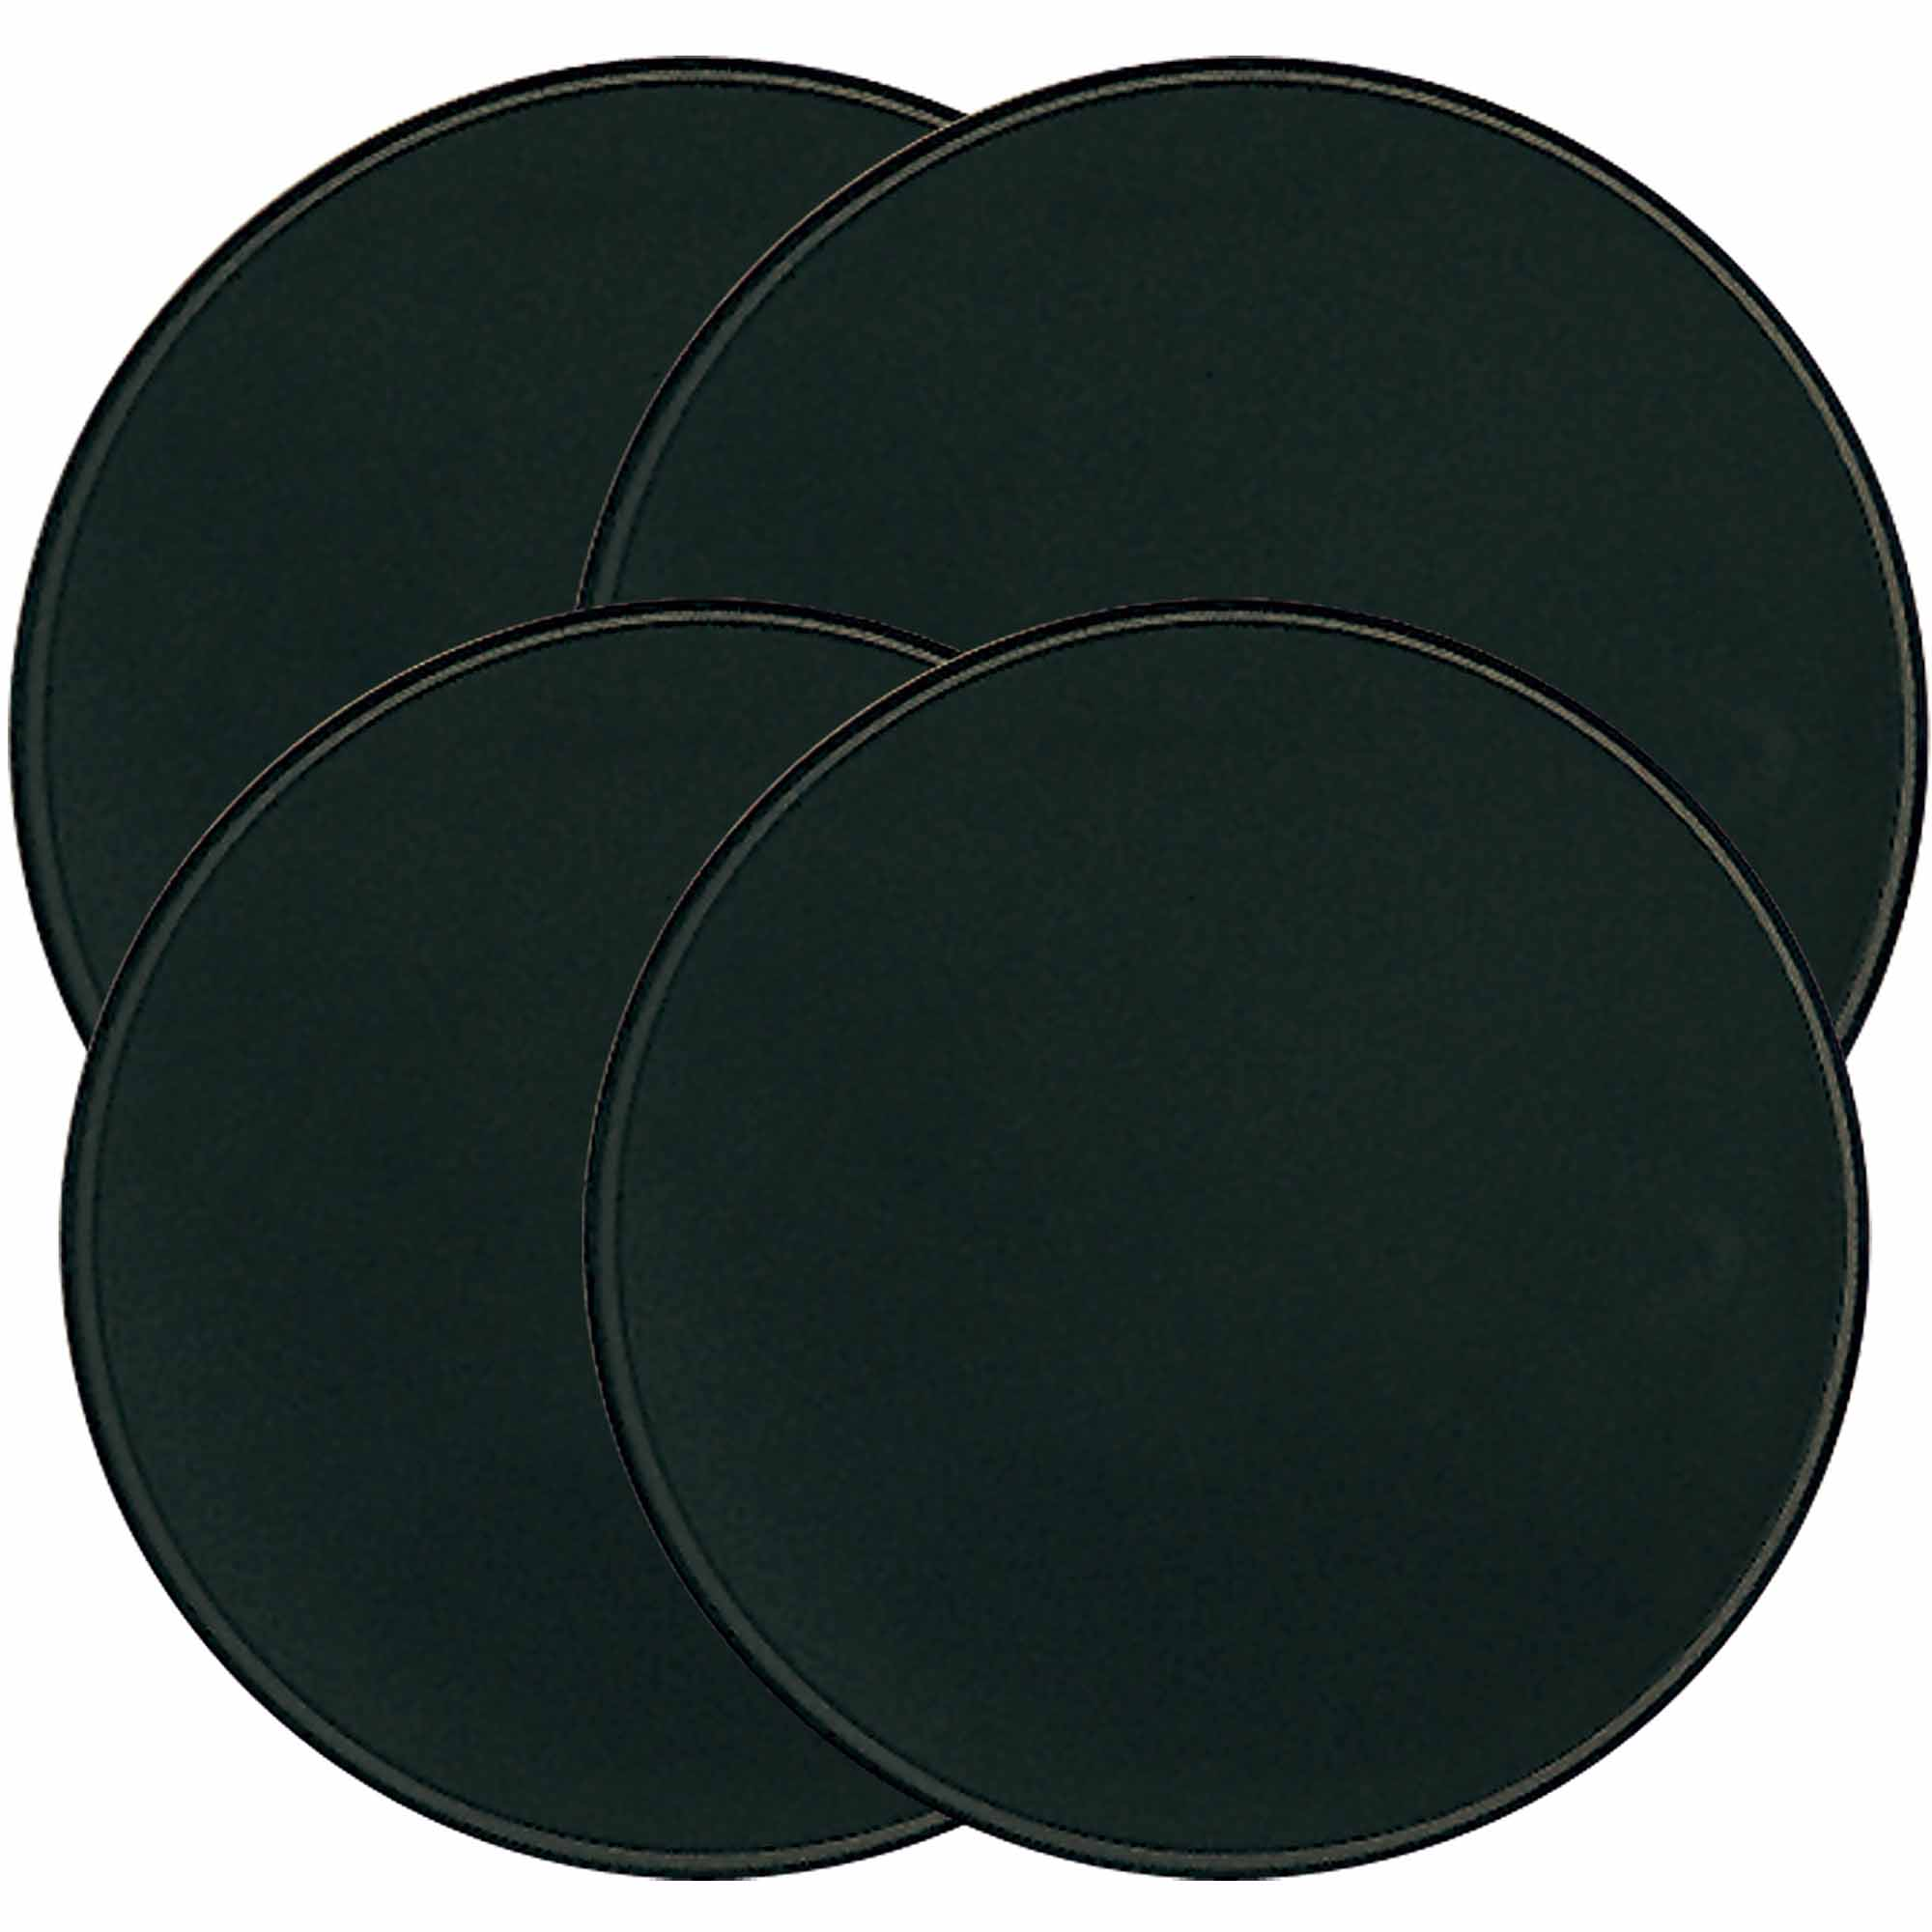 Range Kleen 4-Piece Burner Kover Set, Round, Black